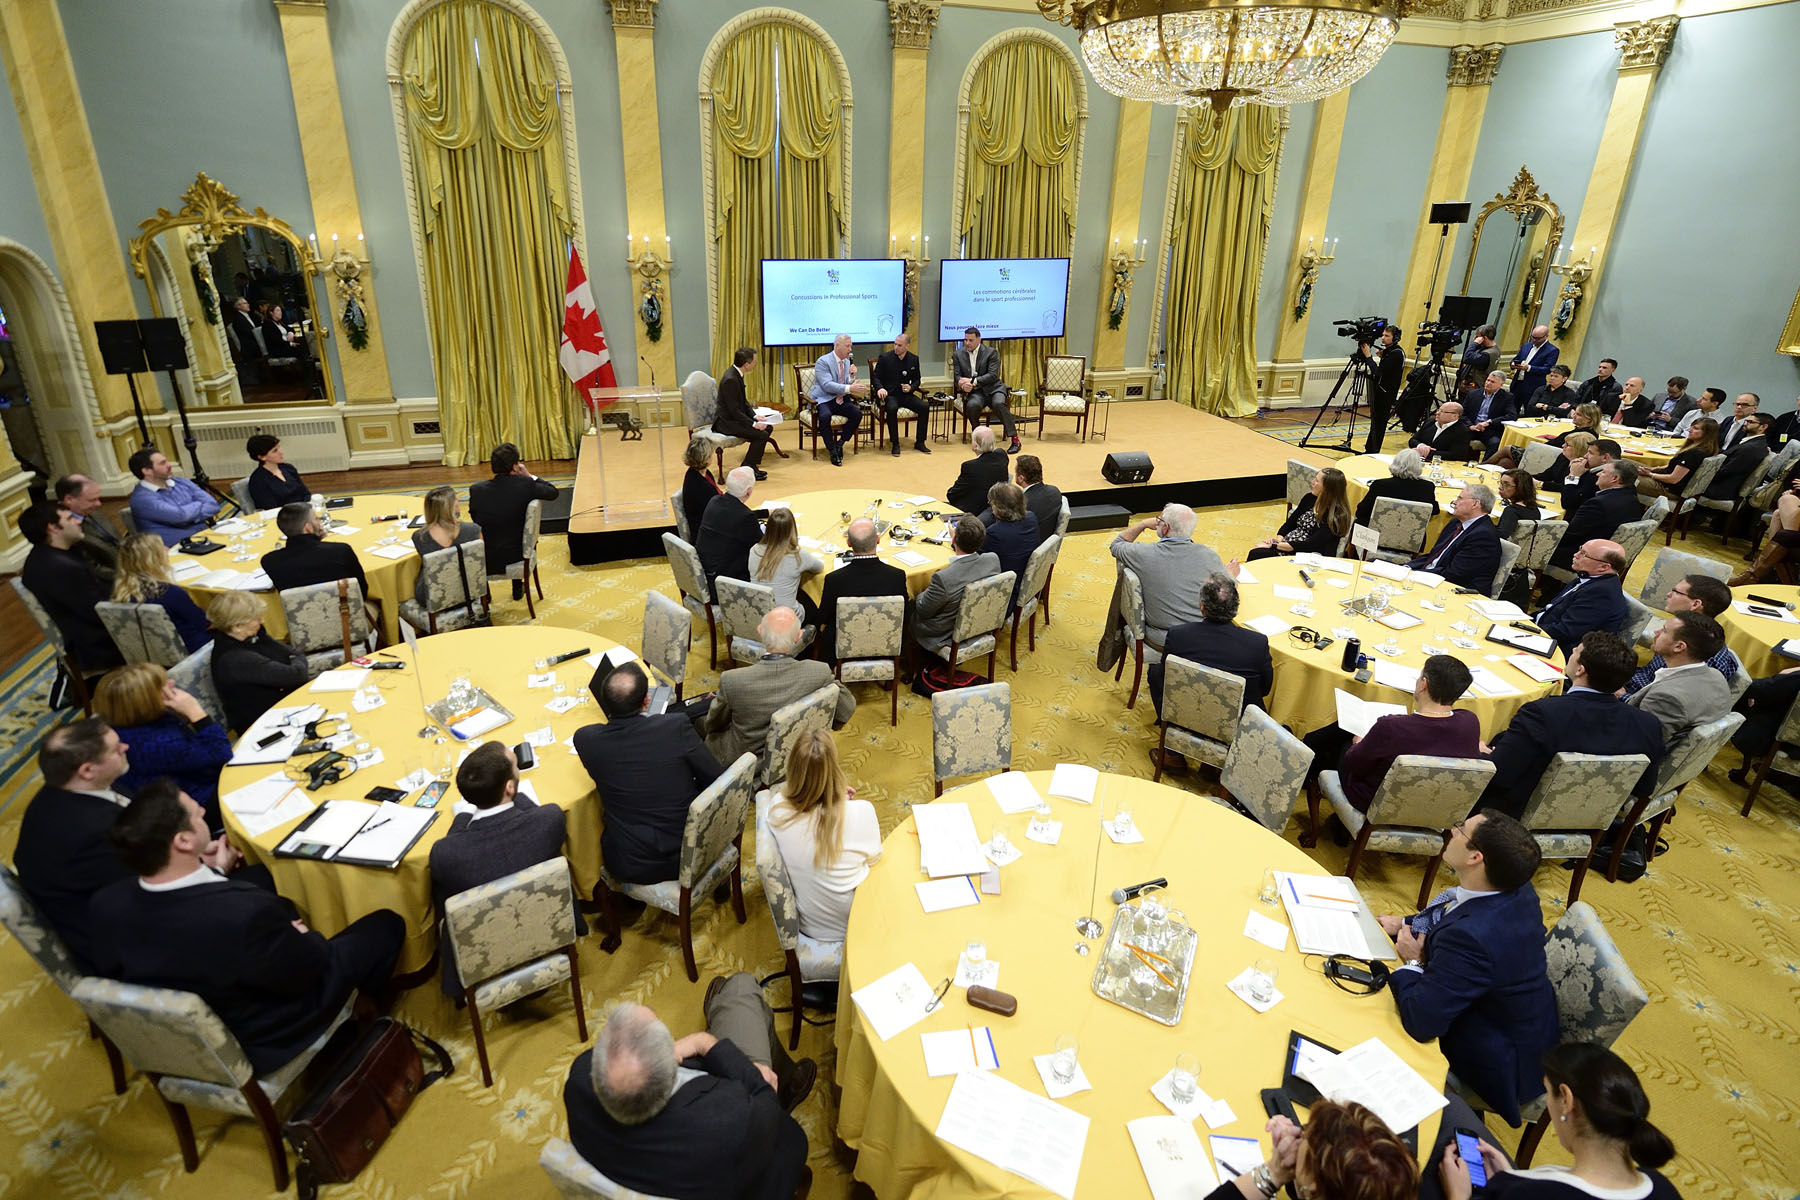 The conference provided participants with the opportunity to share experiences and best practices in an effort to contribute to the work being done to help reduce the incidence of concussions, to keep sport safe, and to encourage young people to pursue the sport or physical activity they love without hesitation.